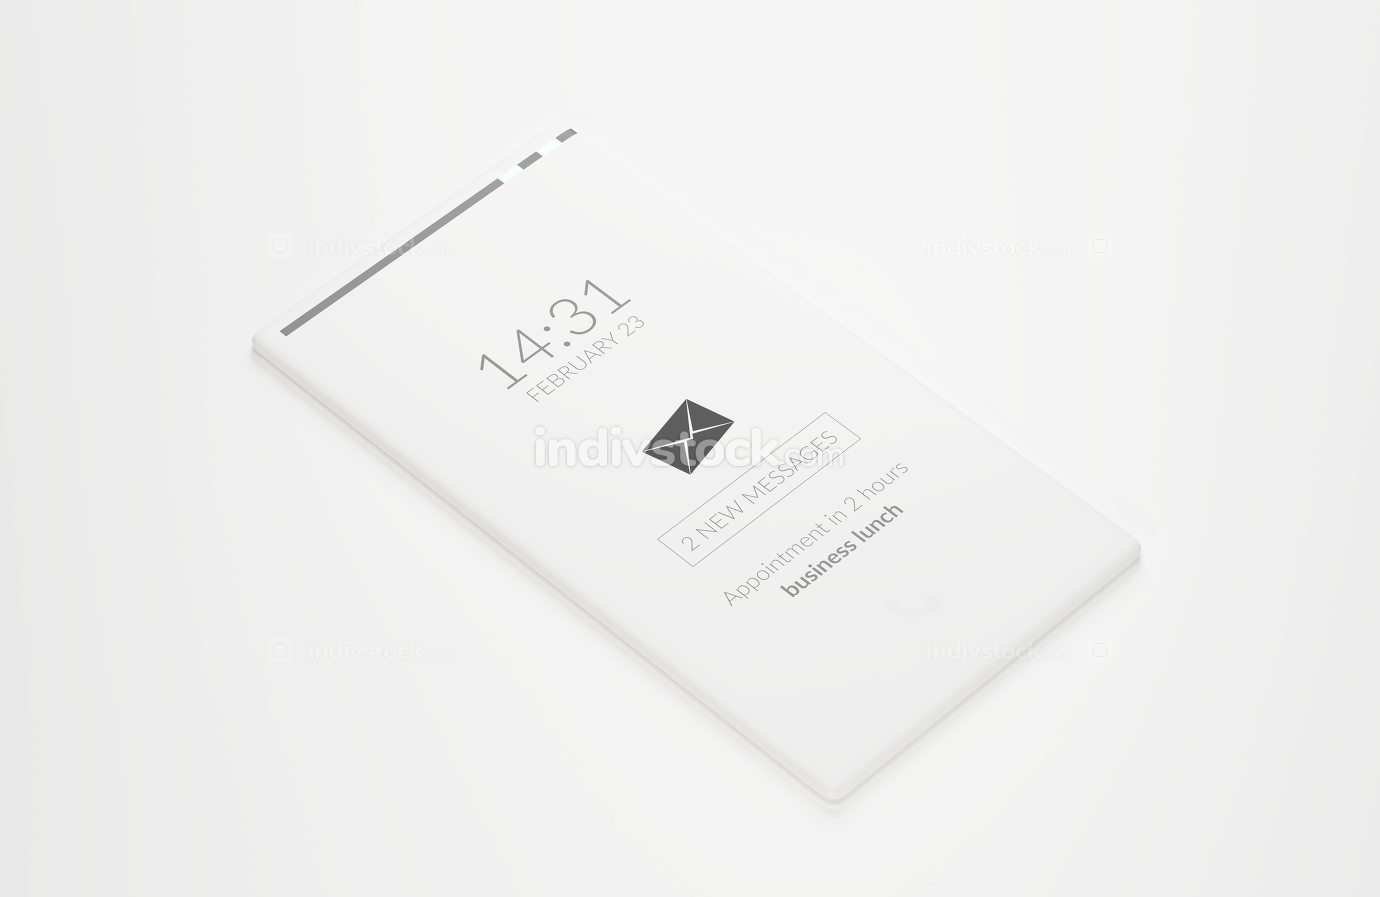 free download: full screen mobile phone white 3d-illustration